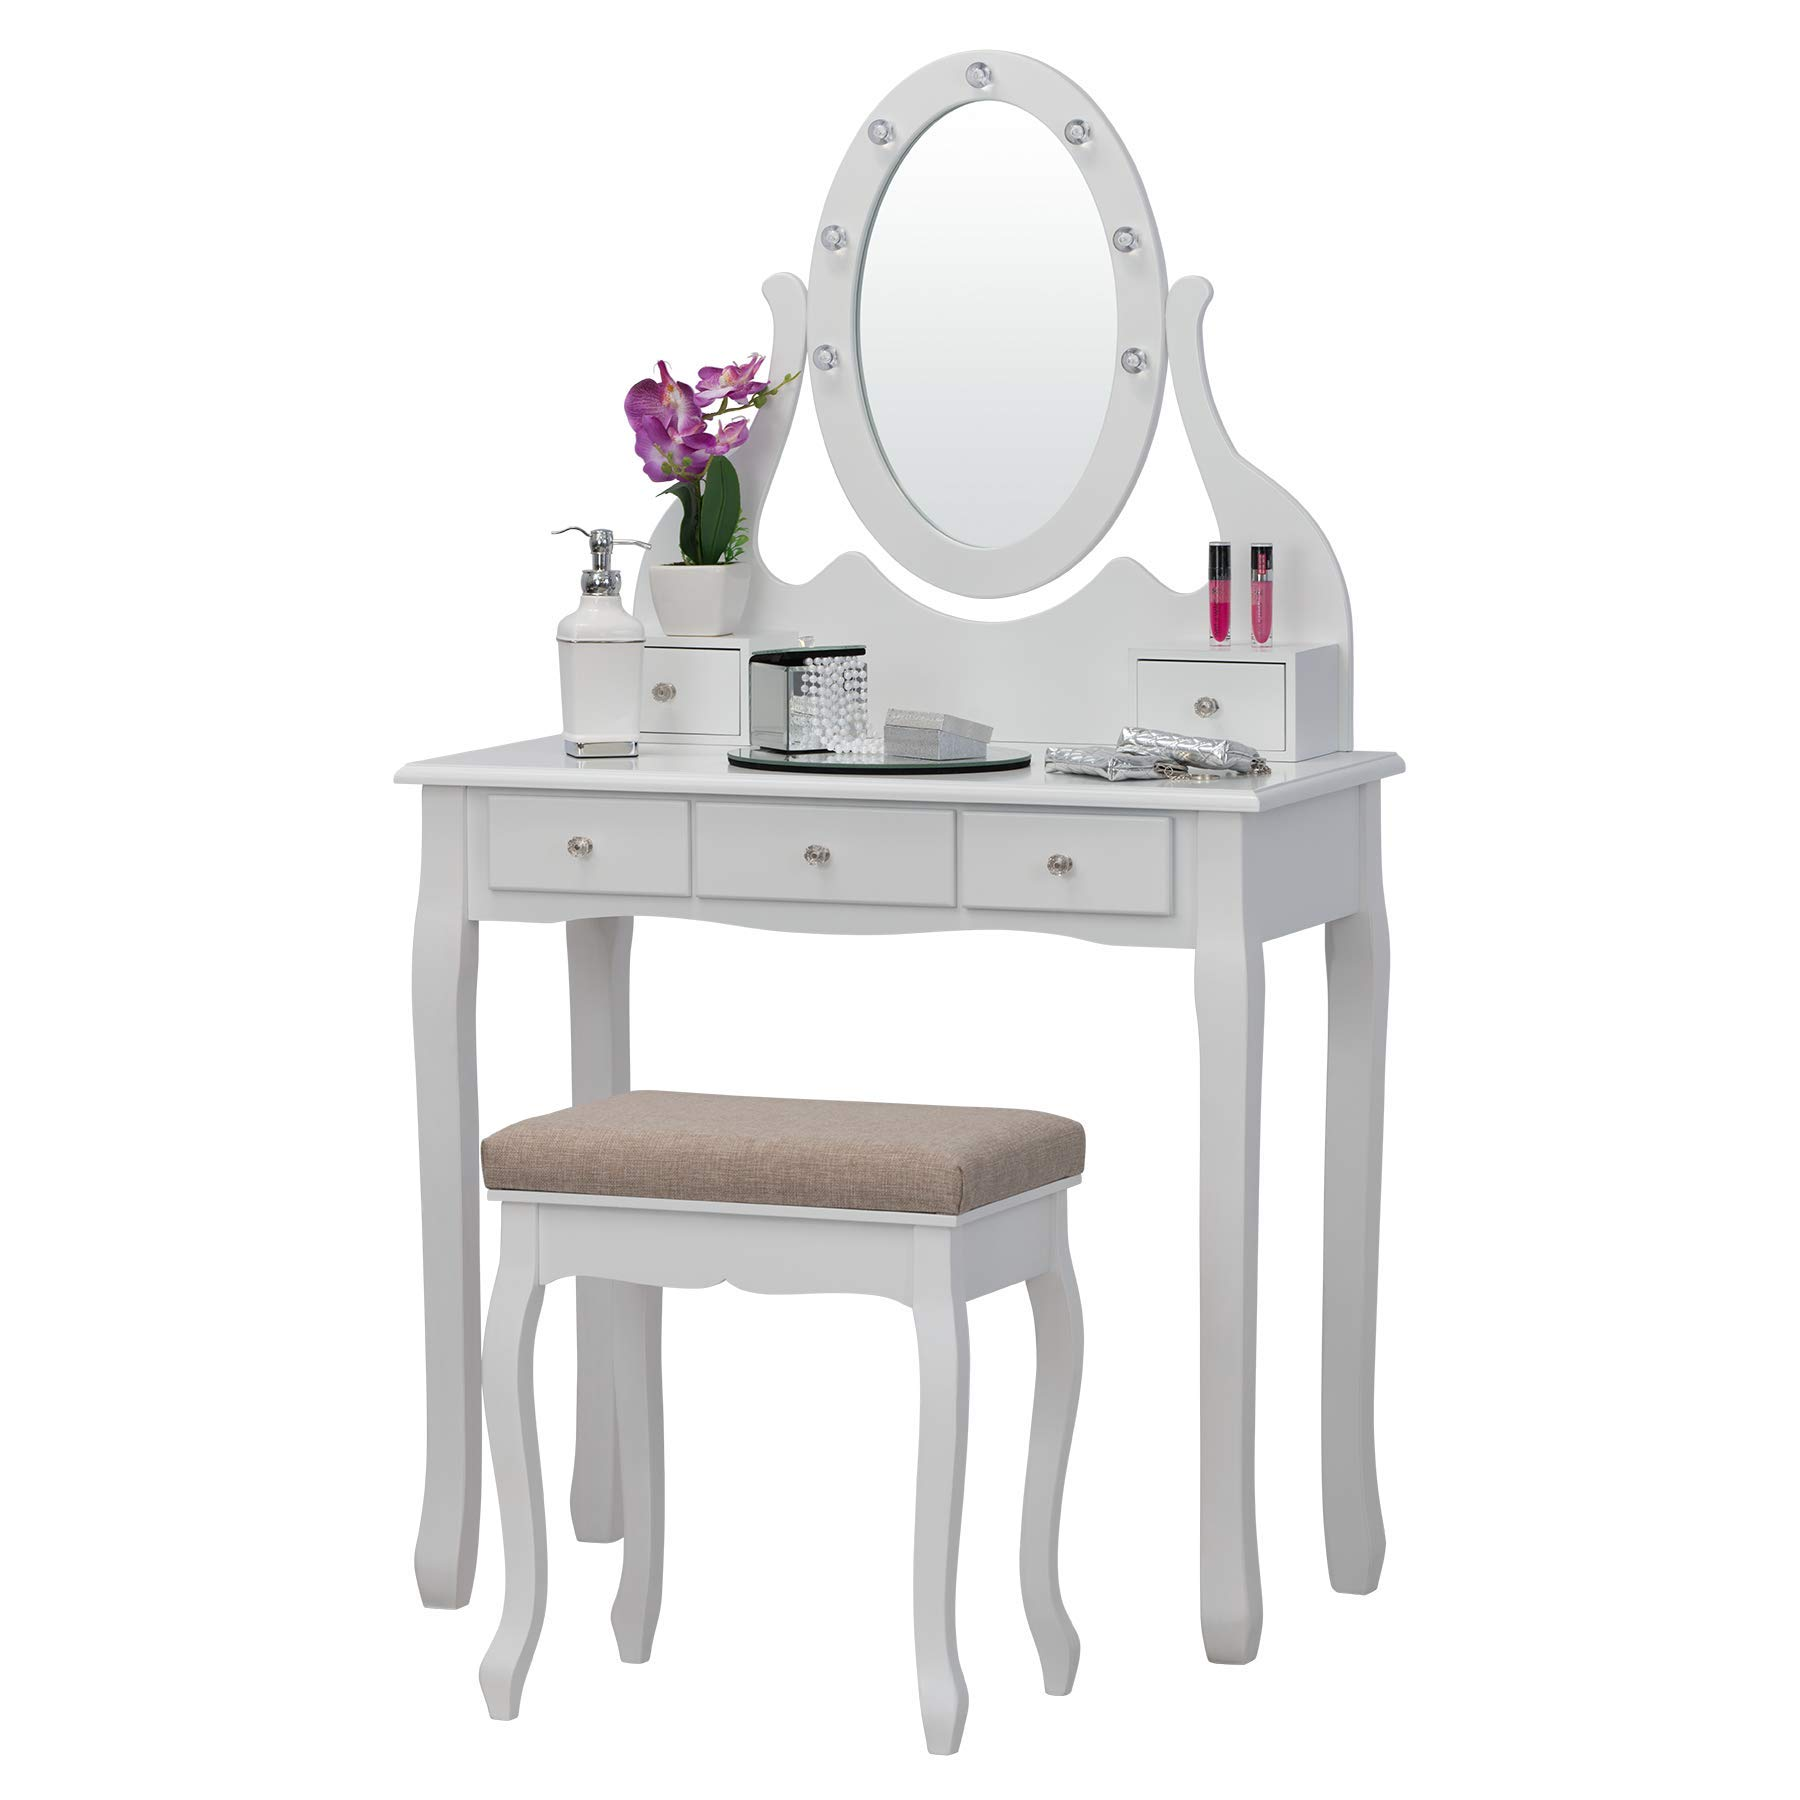 Fineboard FB-VT31-W Vanity Table Set with LED Mirror and Stool with 5 Drawers, White by Fineboard